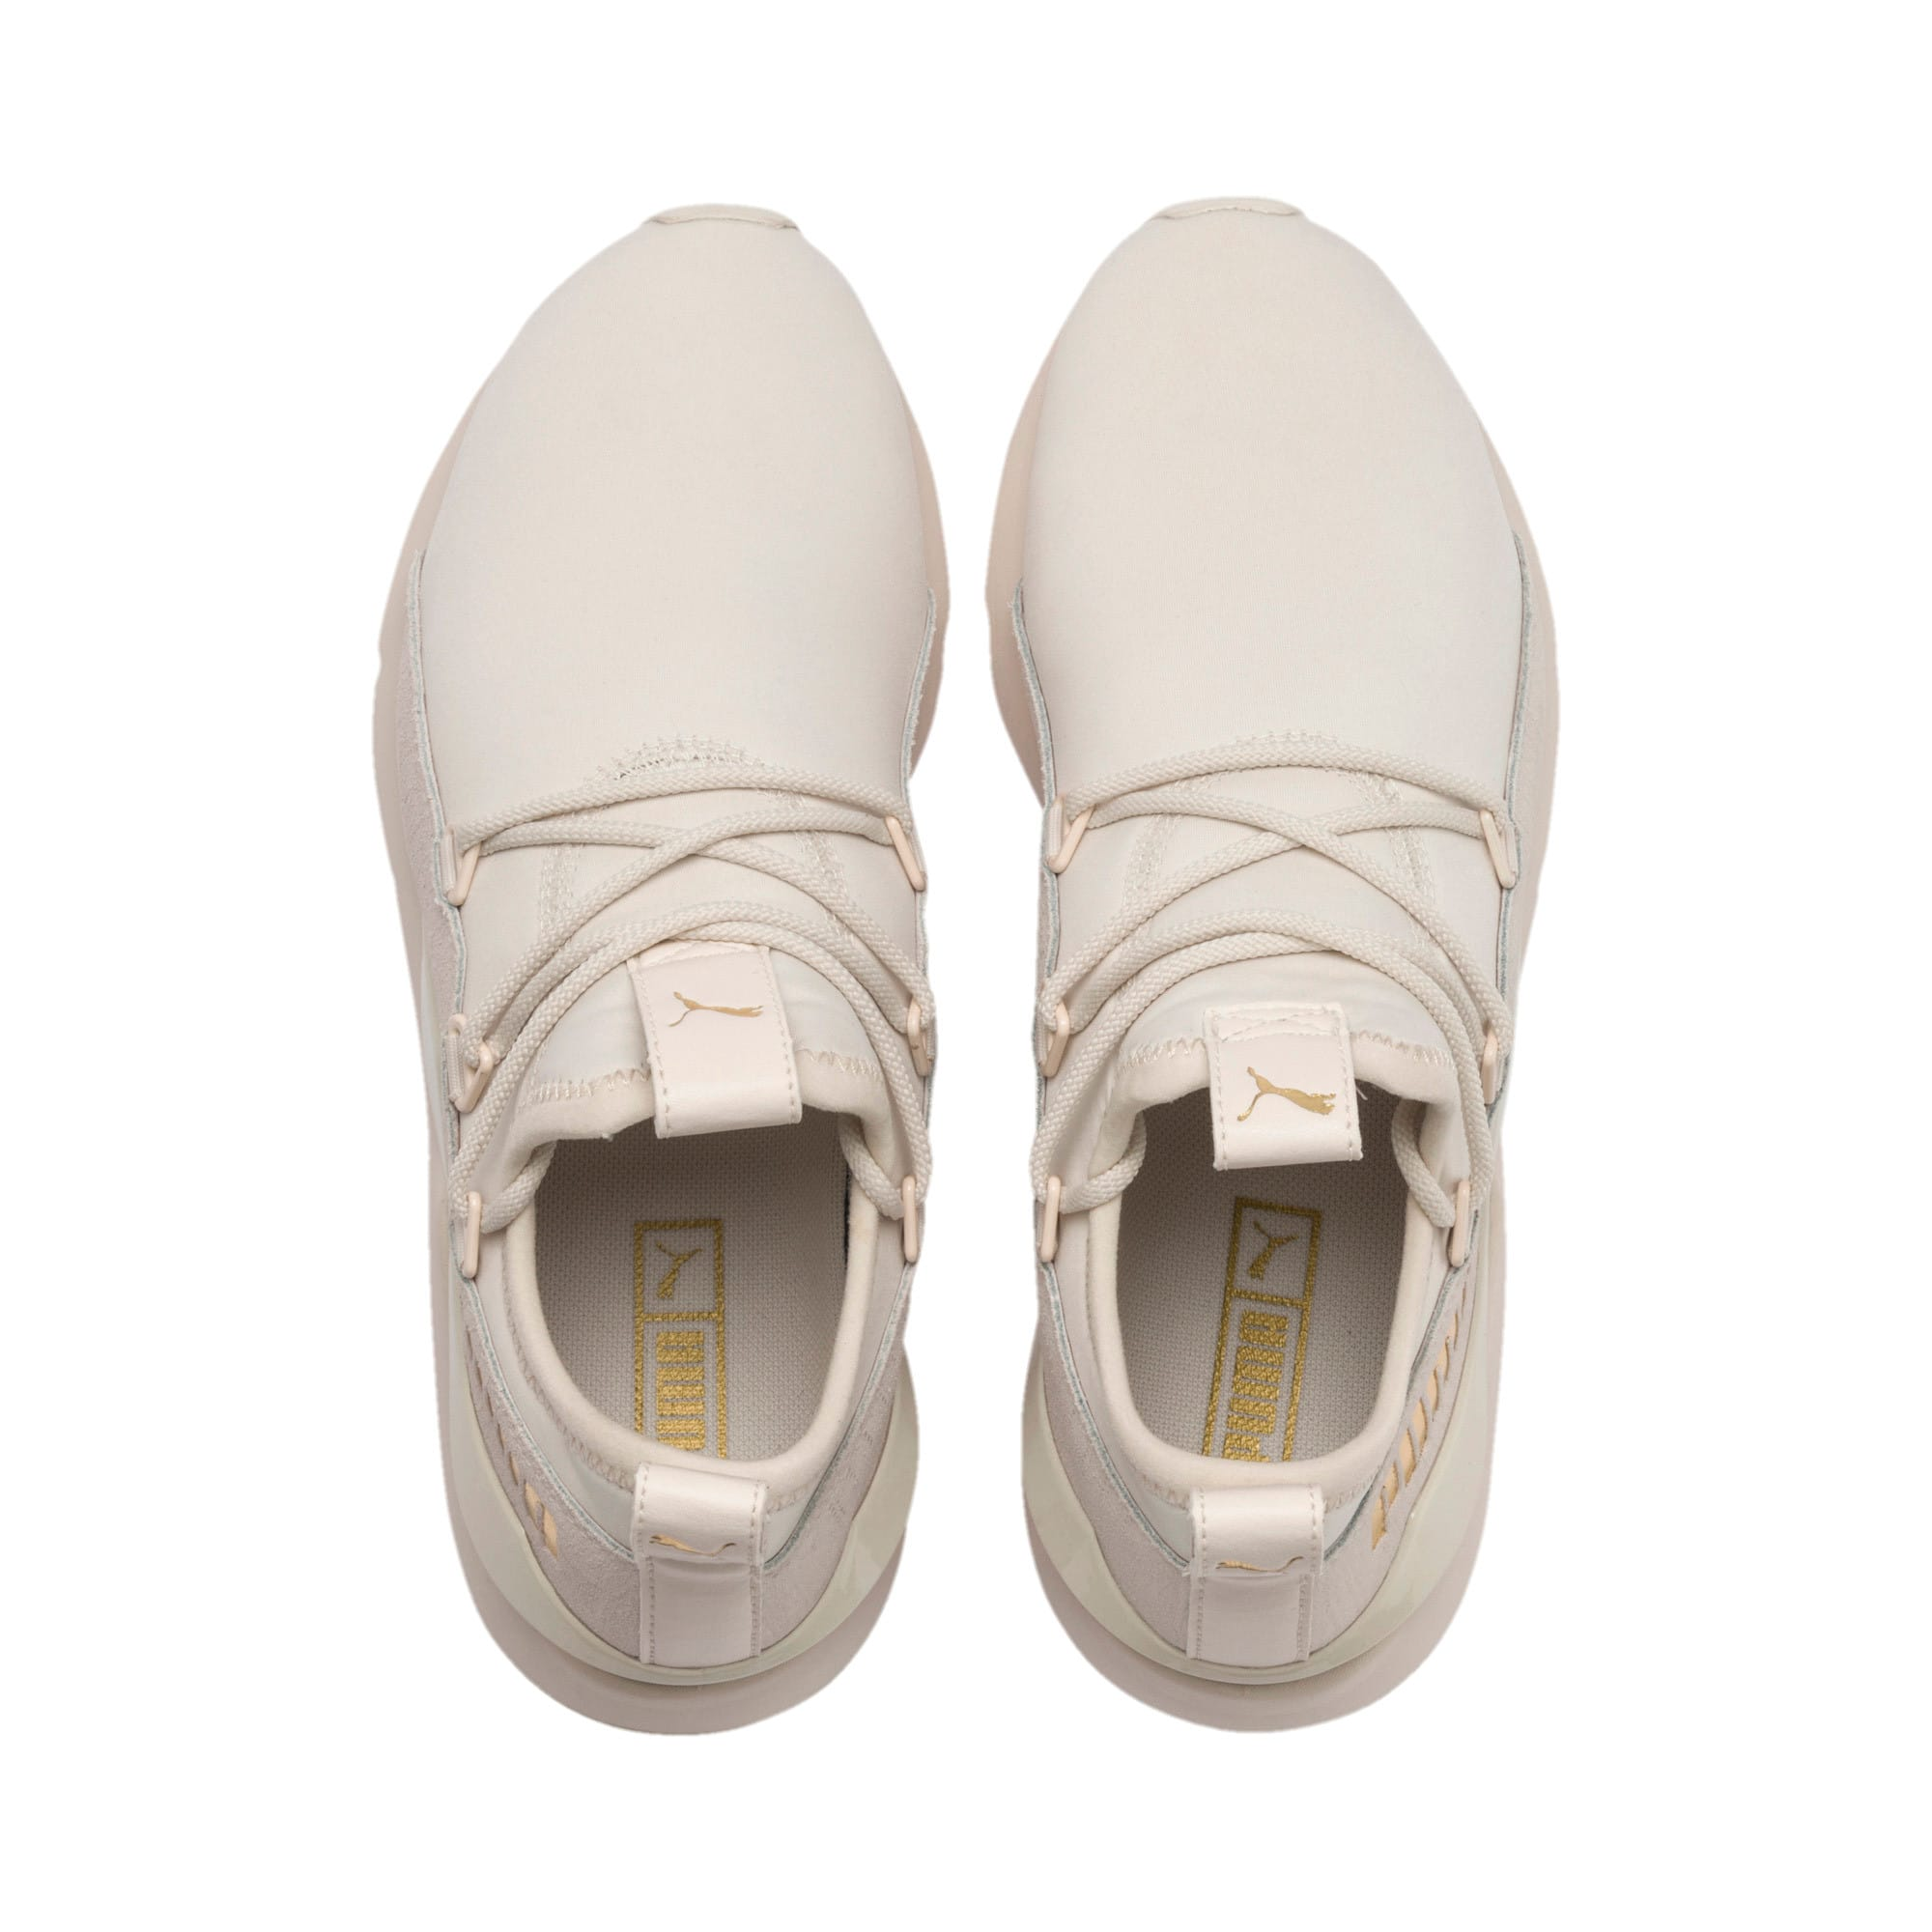 Thumbnail 8 of Muse 2 Metallic Women's Trainers, Pastel Parchment-PTeam Gold, medium-IND